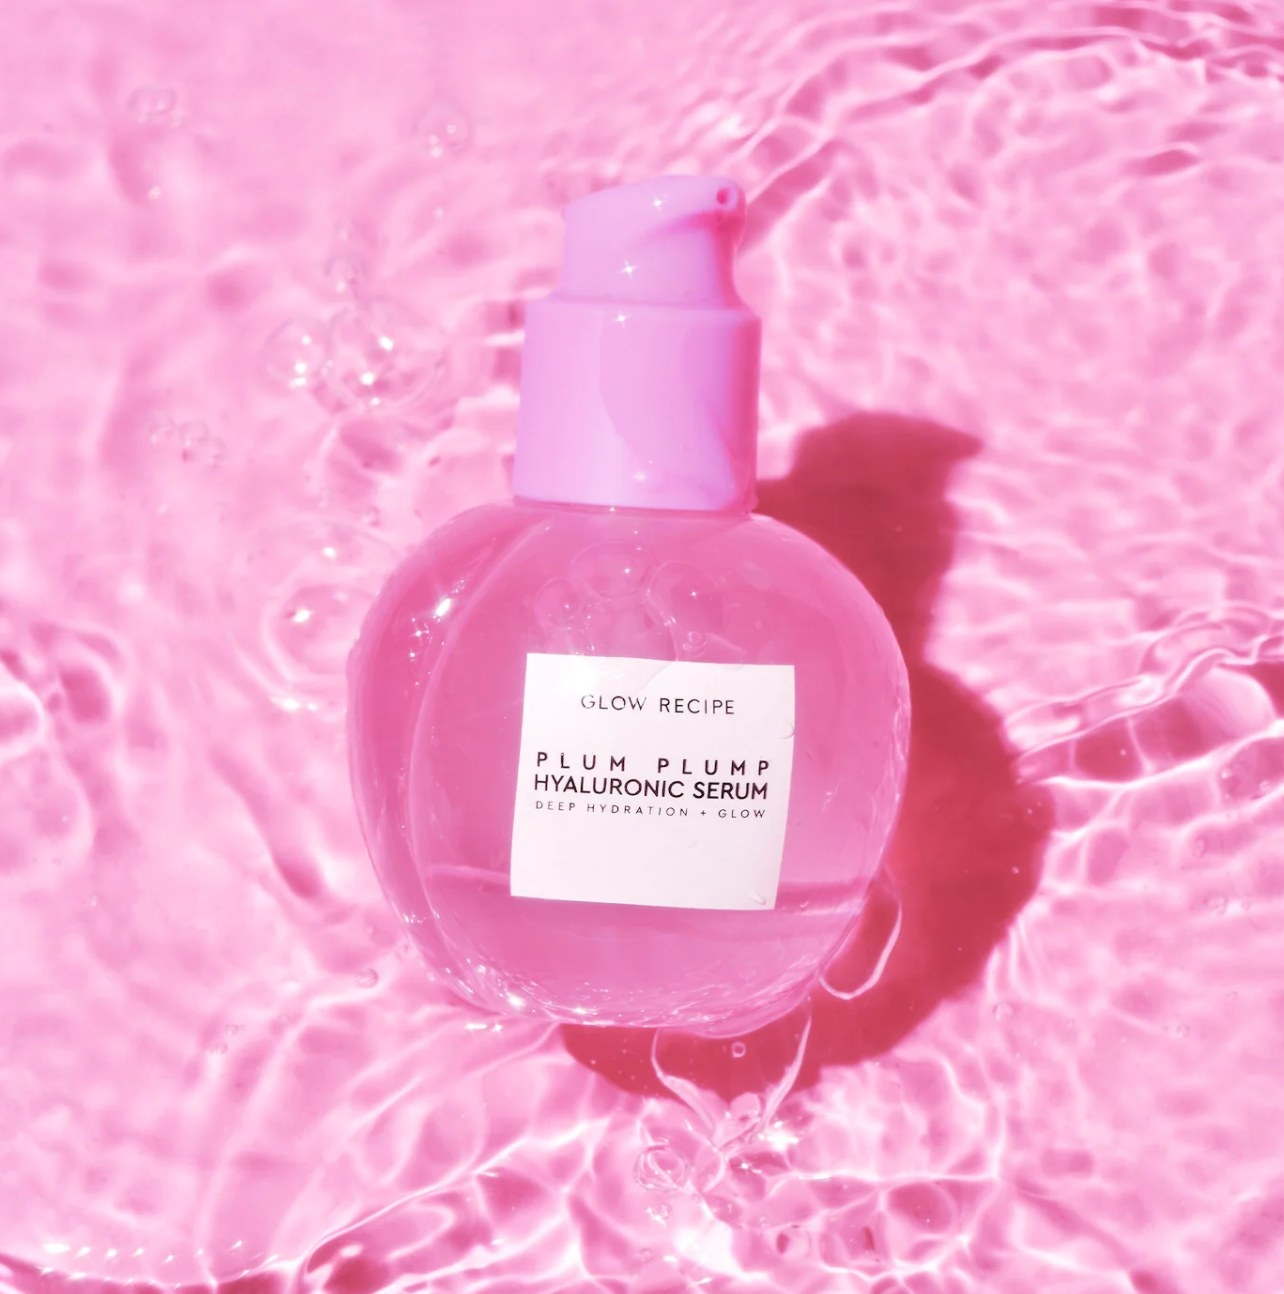 Bottle of glow recipe plum plump against pink water background